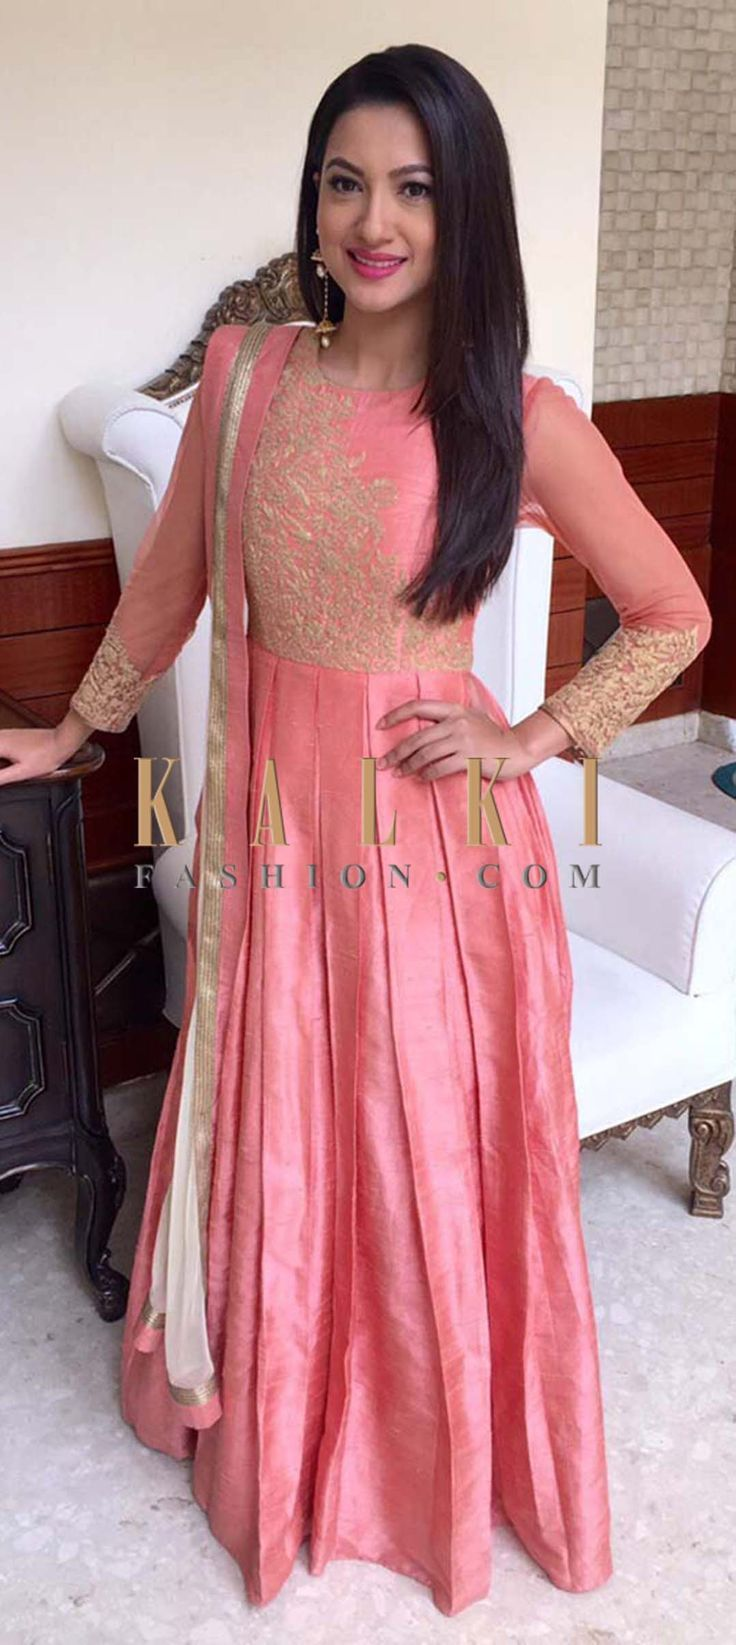 Must have Bollywood Style! Find a style match to the celebrity look of your choice /http/://www.kalkifashion.com/salwar-kameez/anarkali-salwar-kameez.html